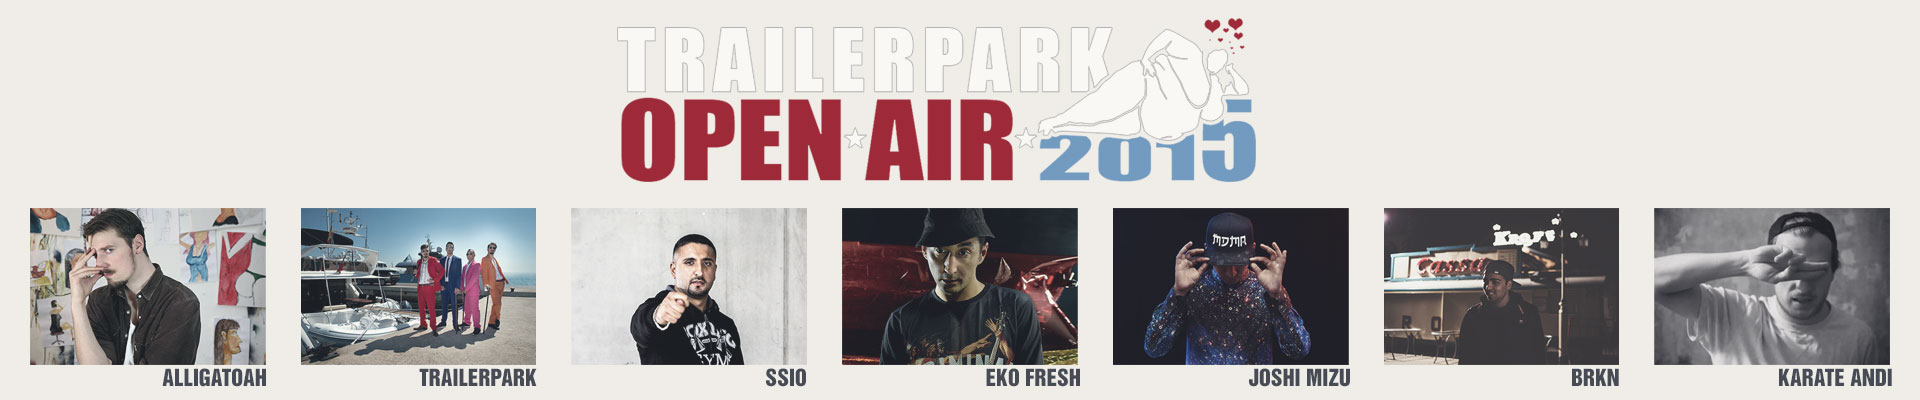 Trailerpark-Open-Air-Banner